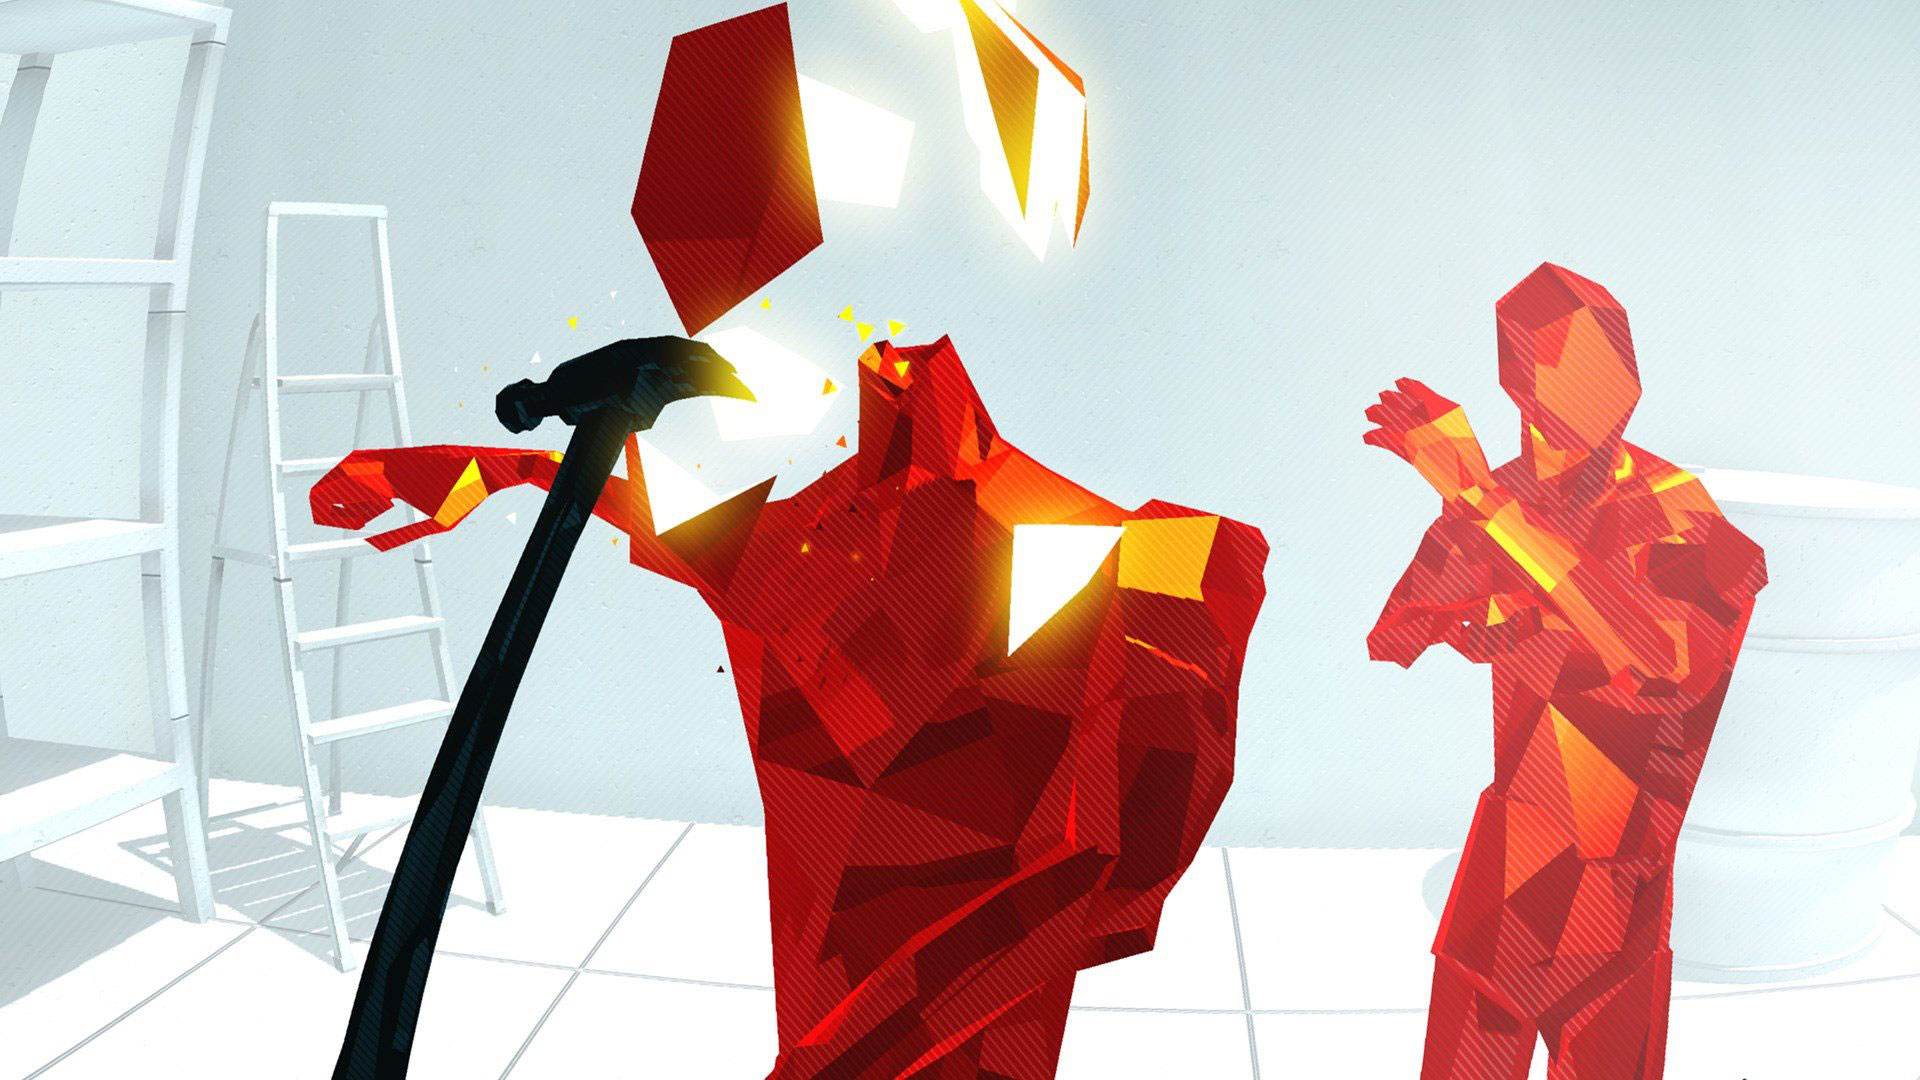 Superhot Playstation VR Screenshot